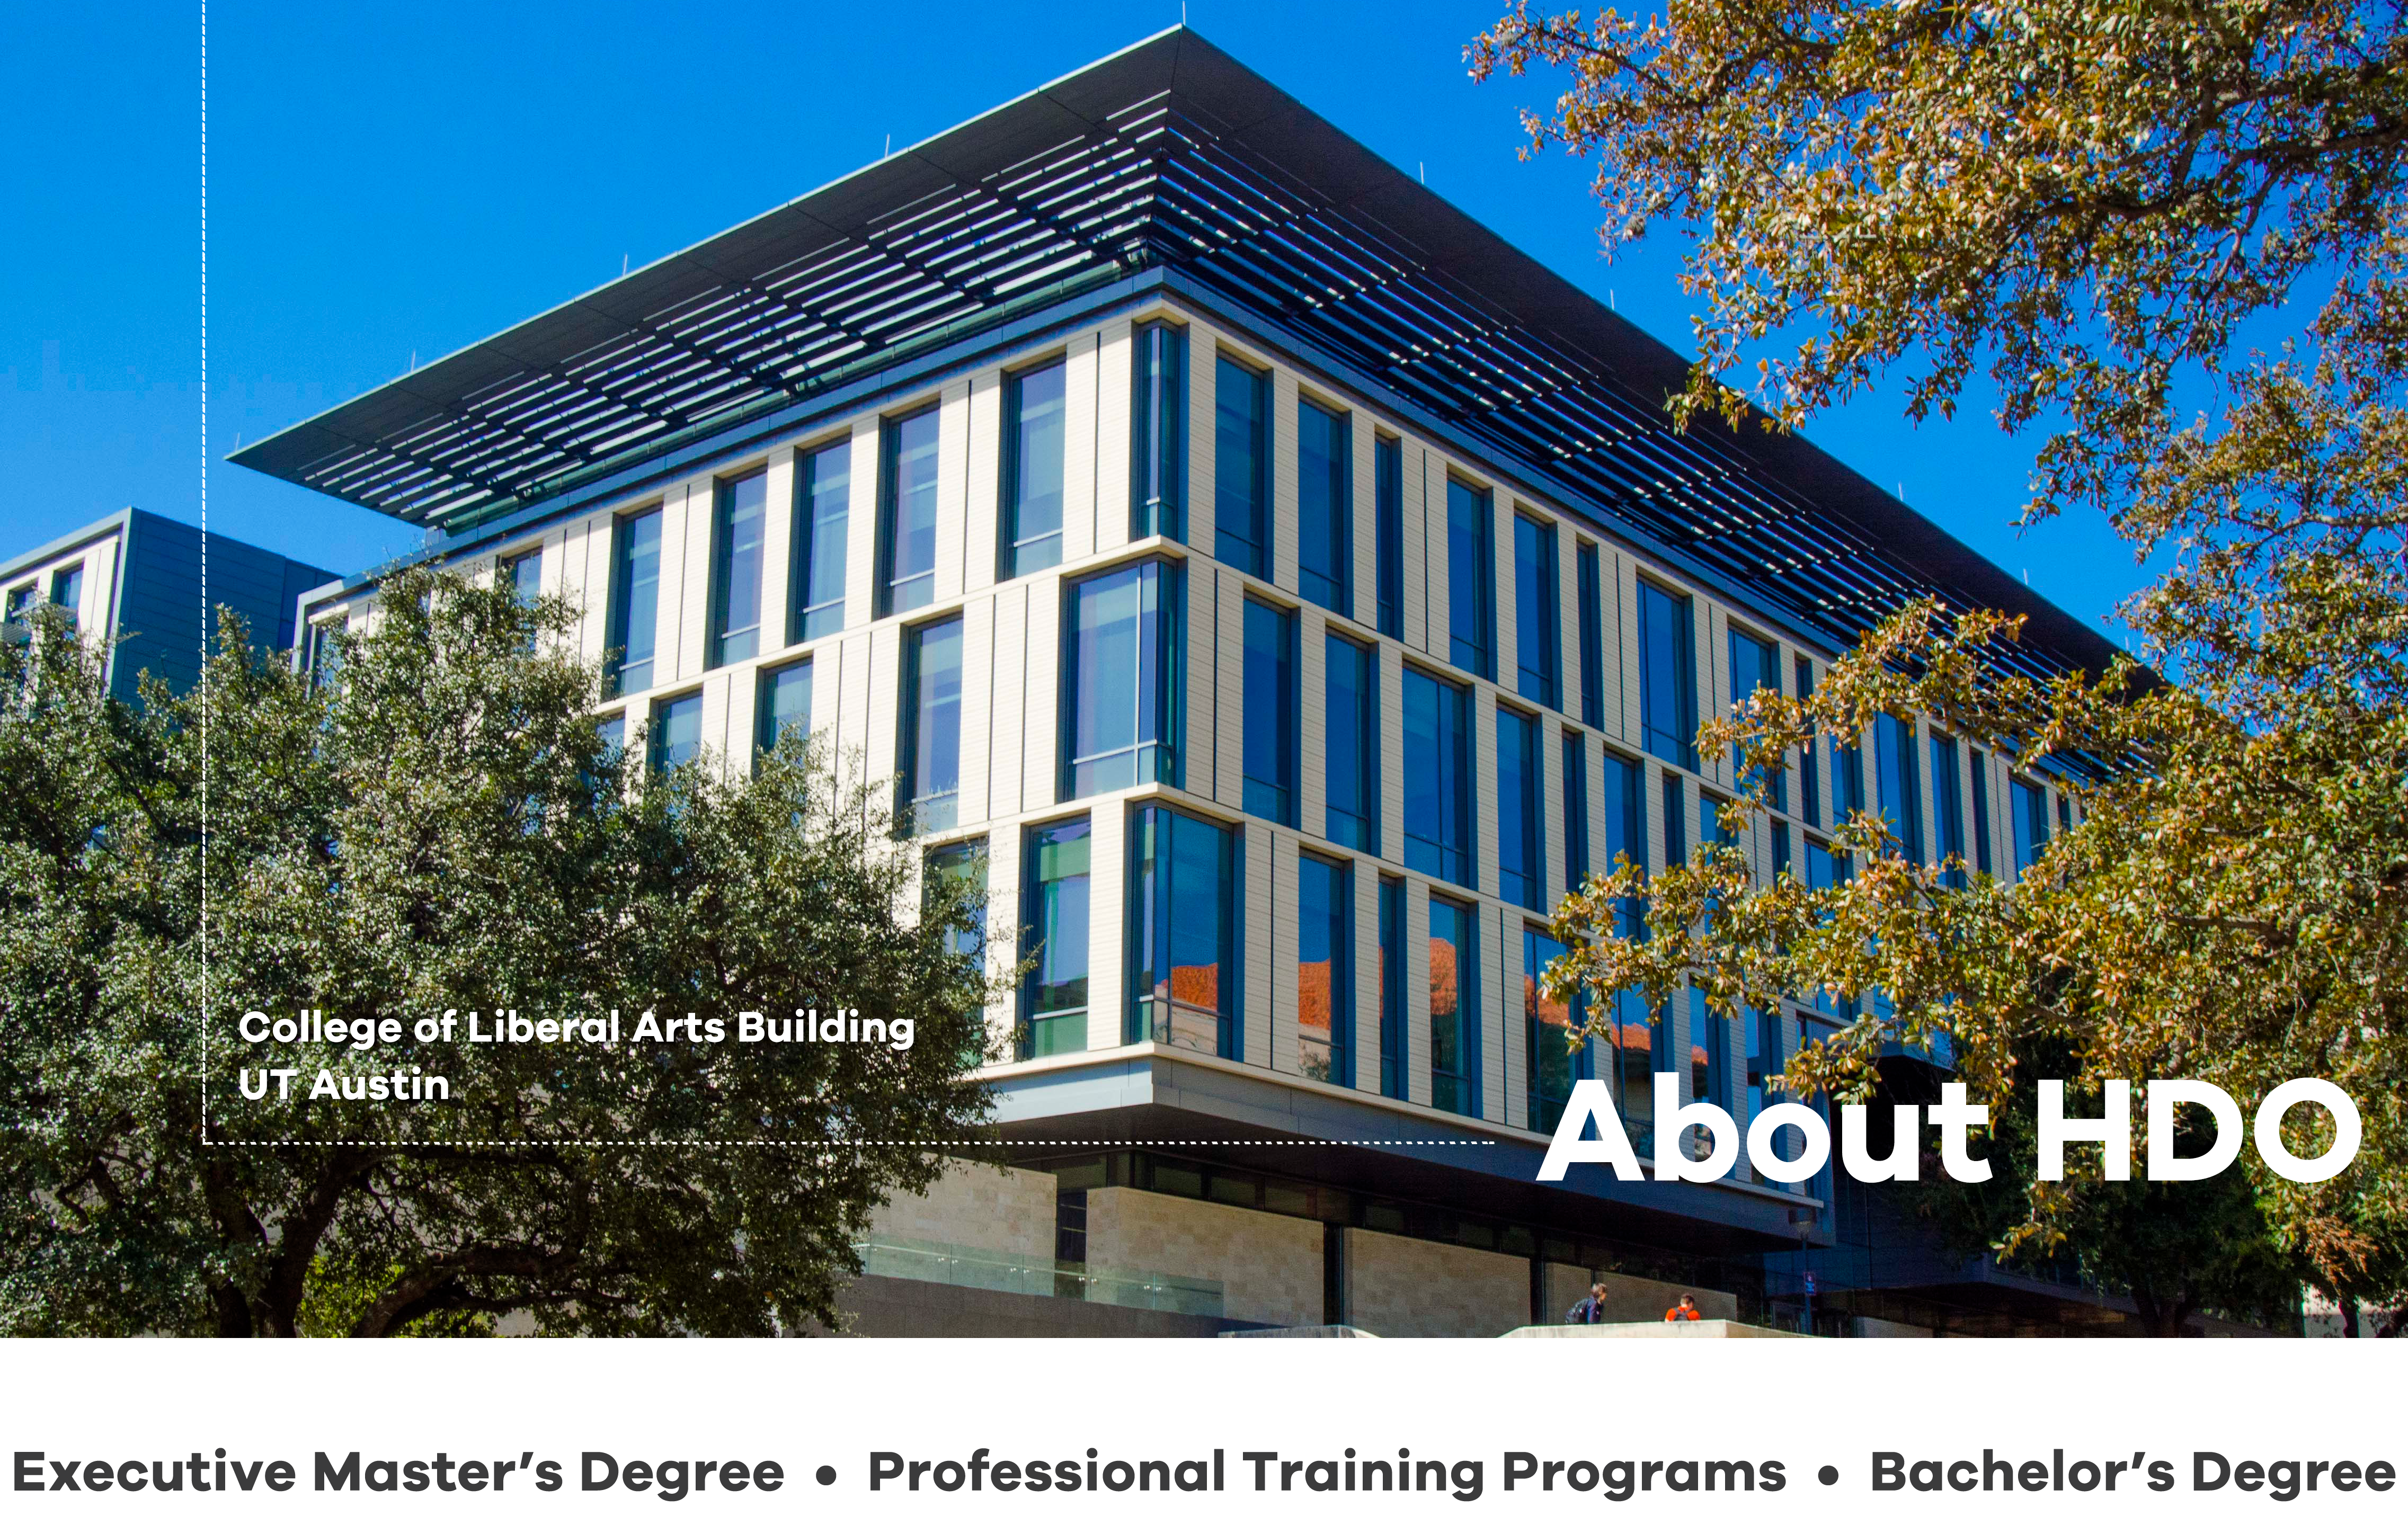 Human Dimensions of Organizations (HDO): Higher Education at The University of Texas at Austin offering an Executive Master's Degree, Professional Training programs, and a Bachelor's Degree